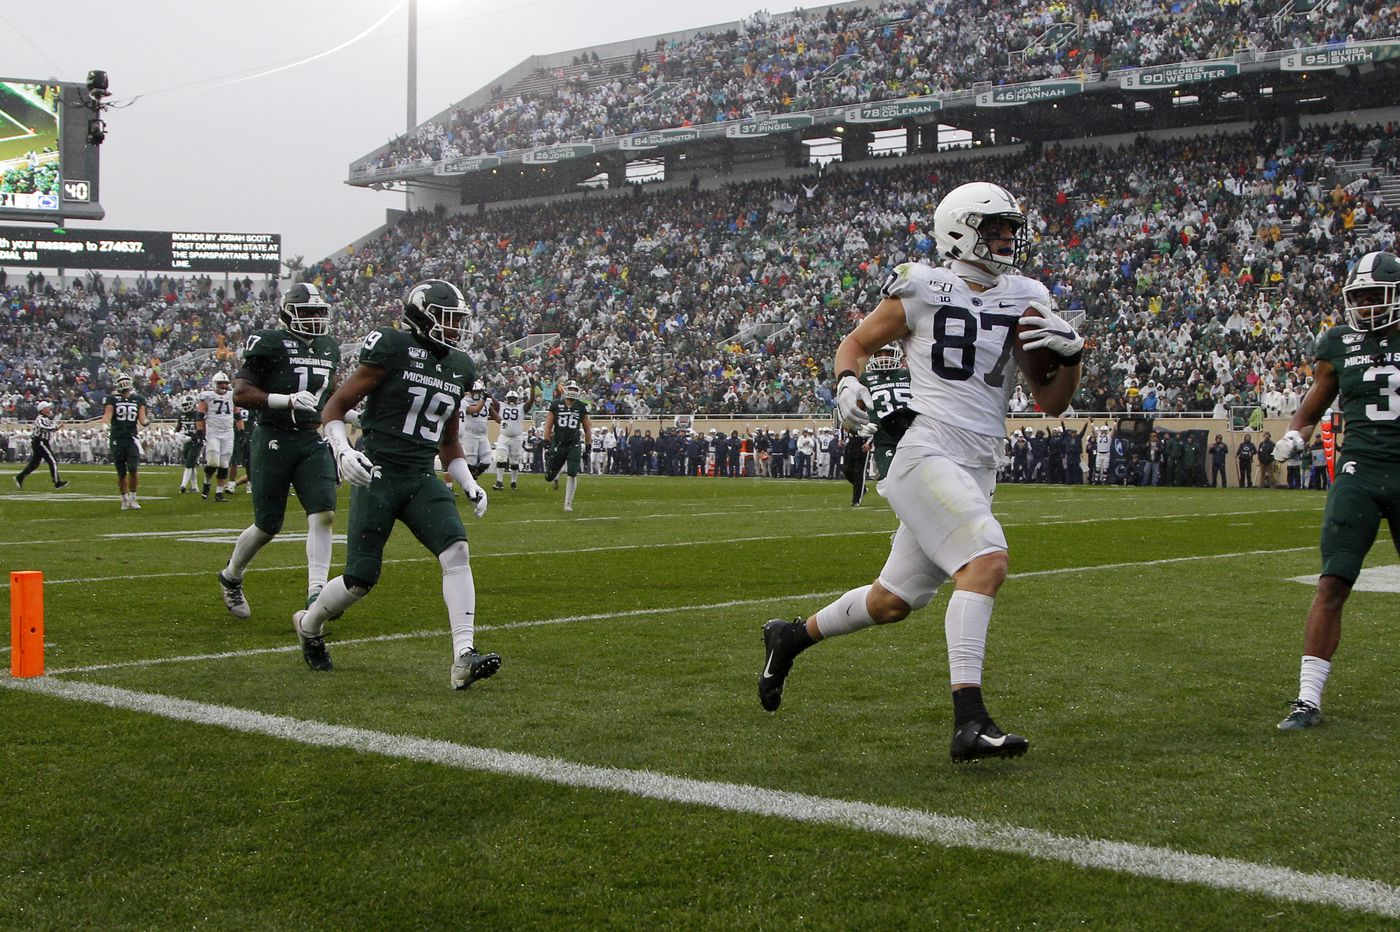 Penn State 28, Michigan State 7: Three takeaways from the Nittany Lions' victory